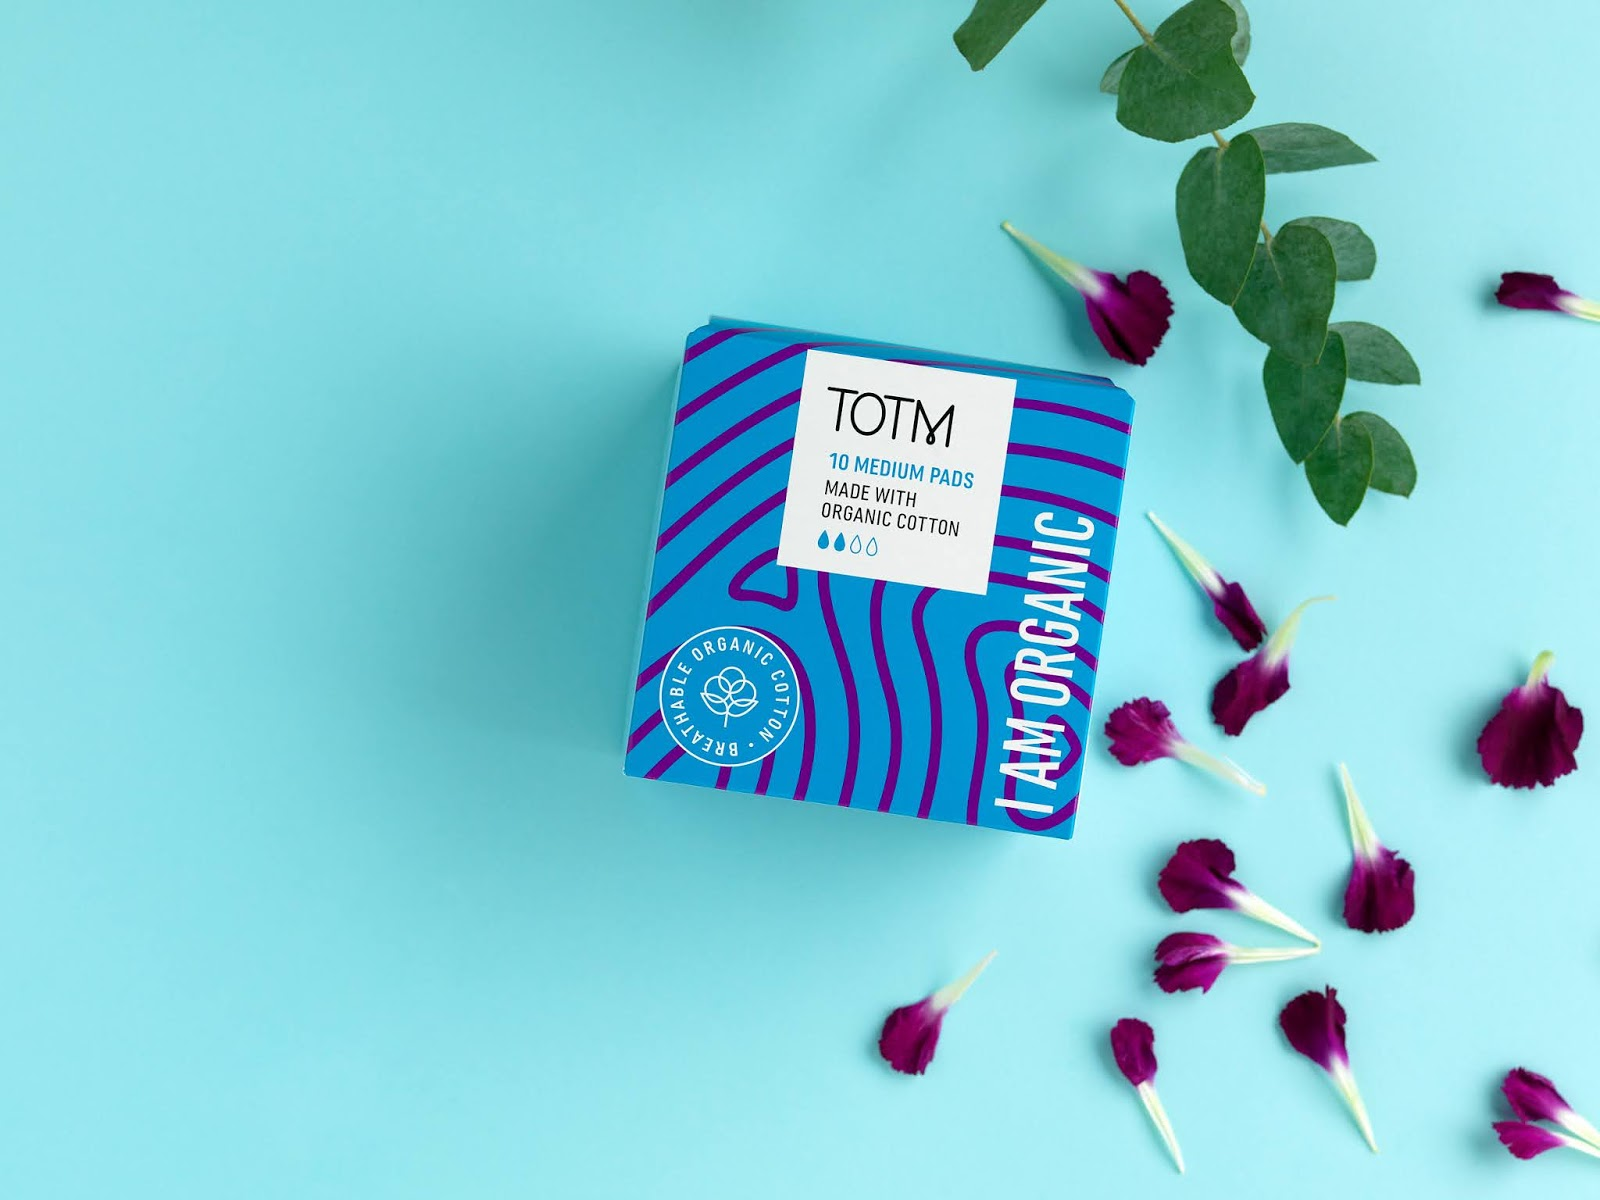 TOTM organic cotton period products